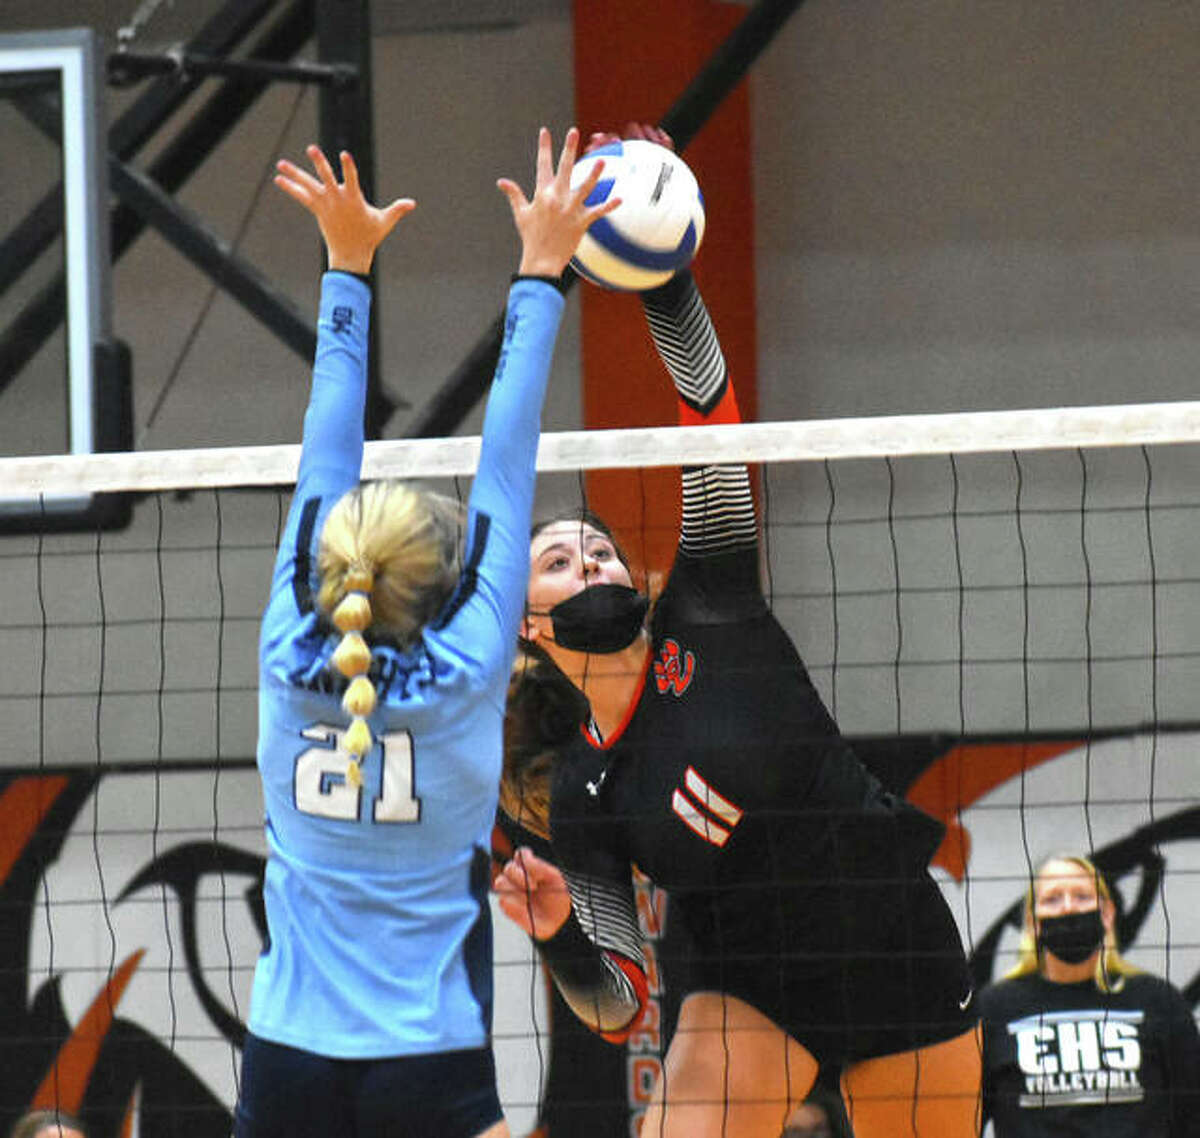 Edwardsville's Gabby Saye slams down a kill against Mater Dei in the semifinals of the Tiger Classic on Saturday.